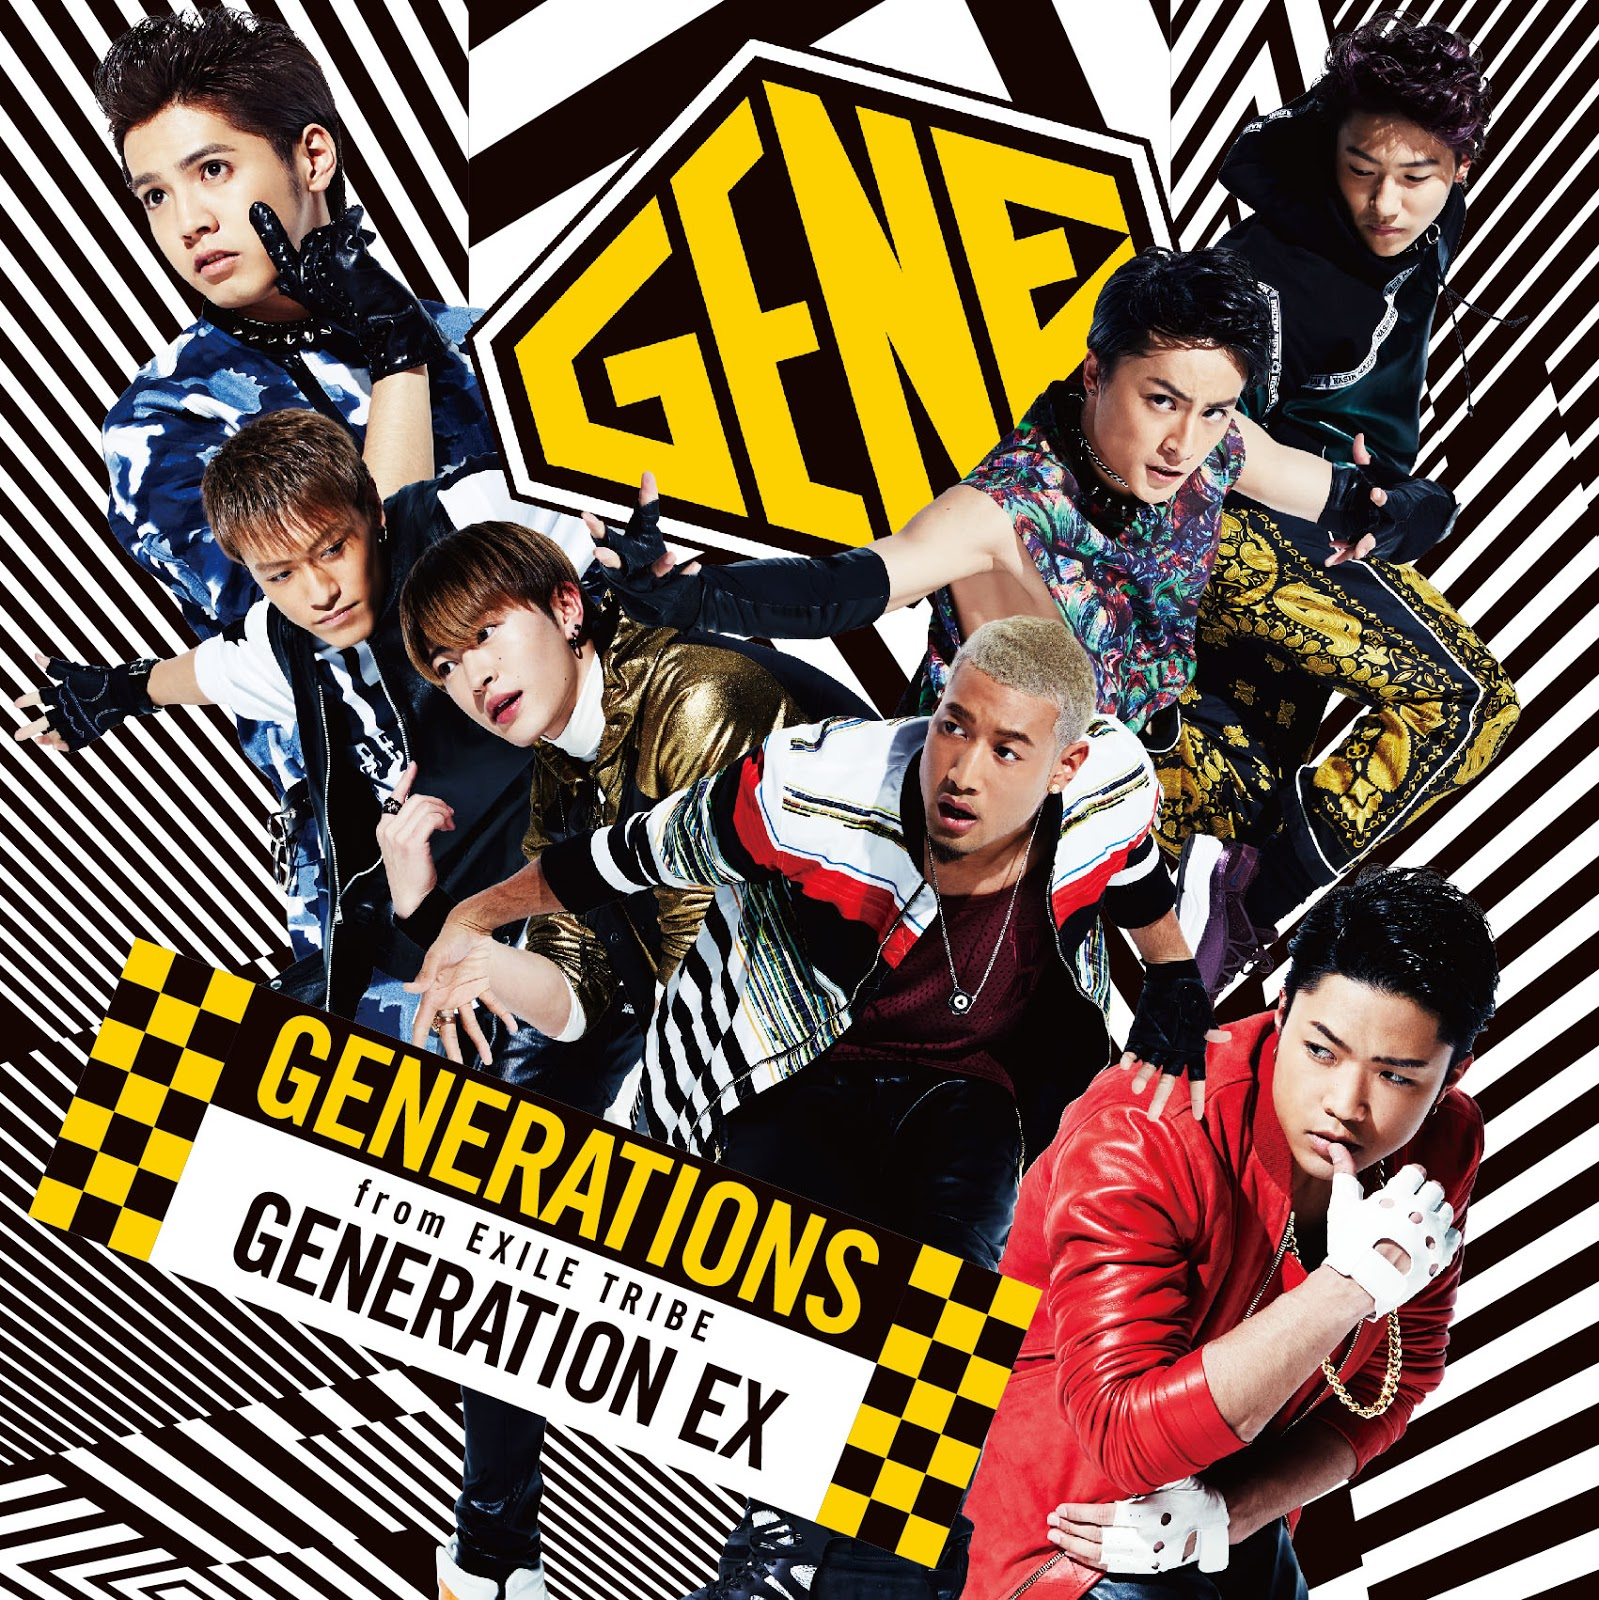 GENERATIONS from EXILE TRIBEの画像 p1_11